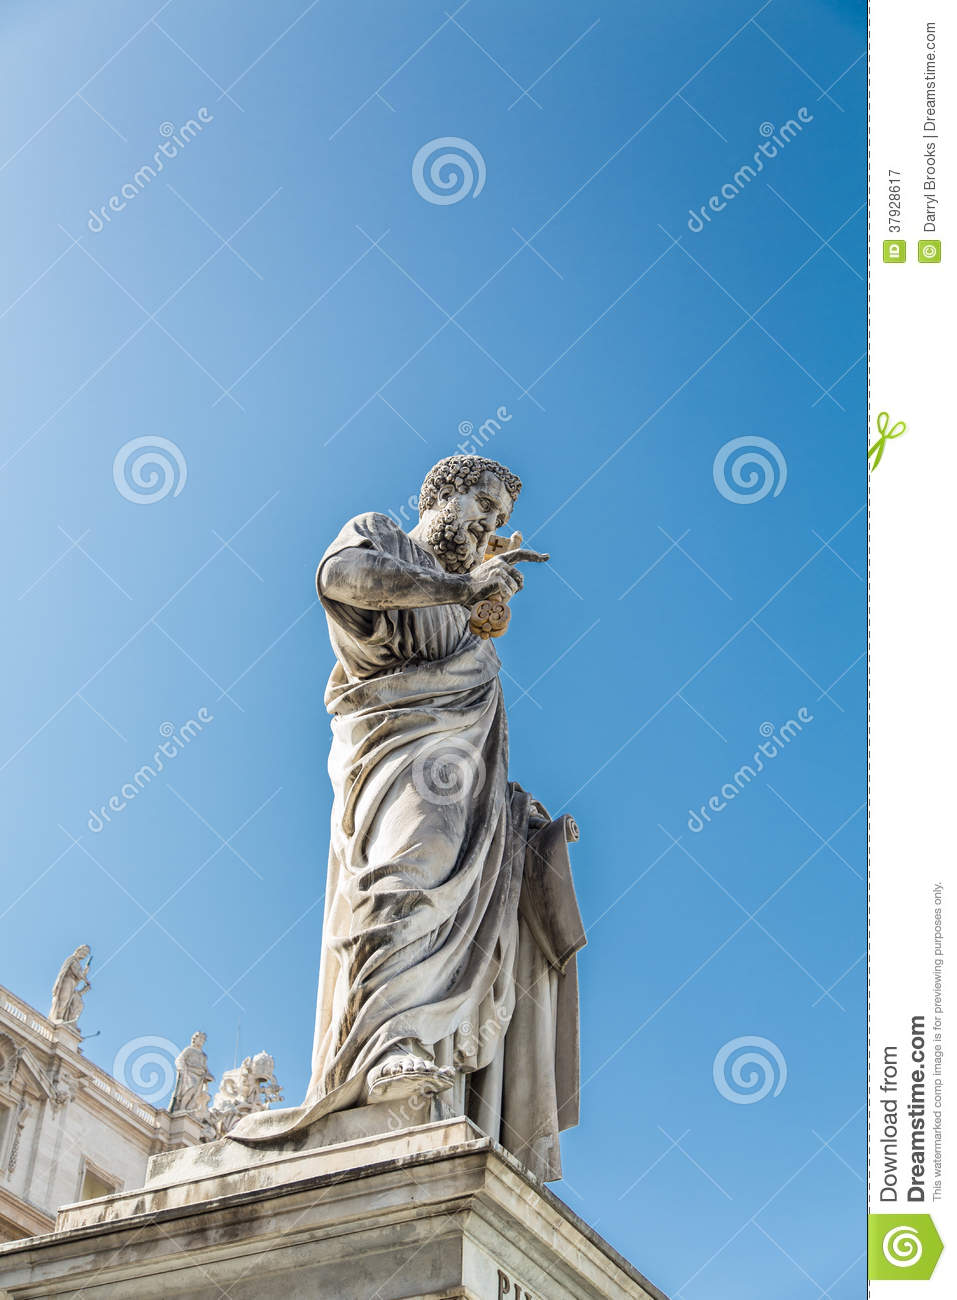 Statue of Pope Under Blue Sky in Saint Peters